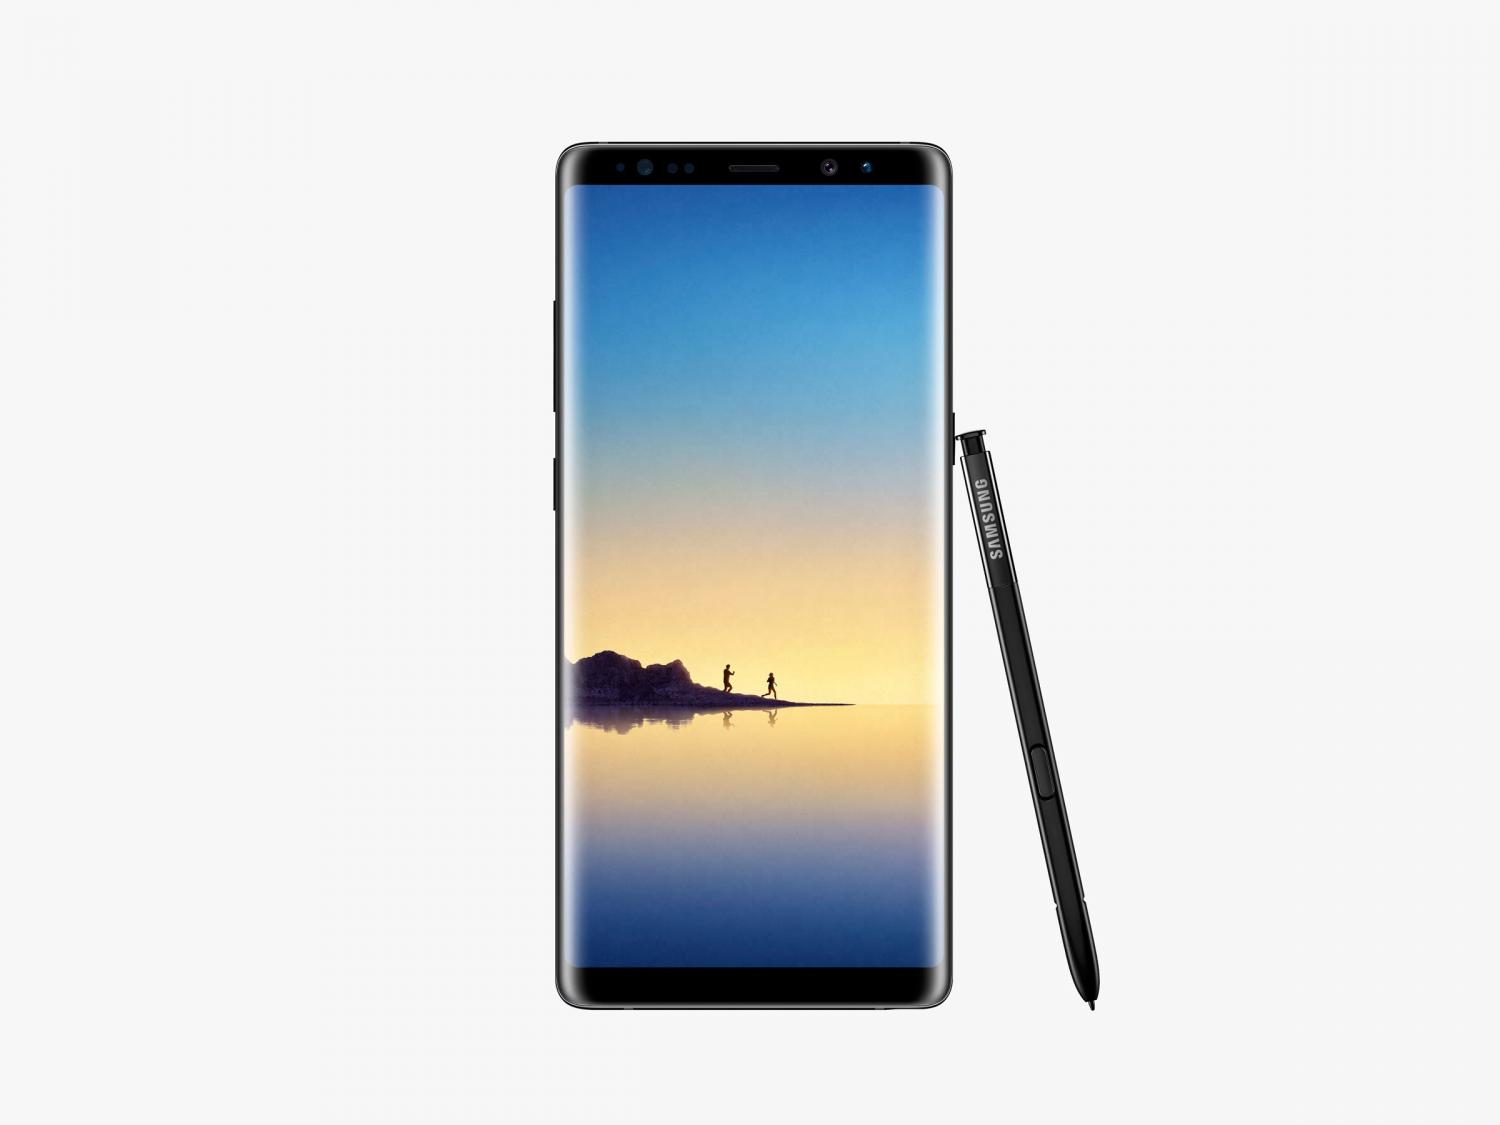 Samsung Galaxy Note 8 to Launch in Italy On September 14th